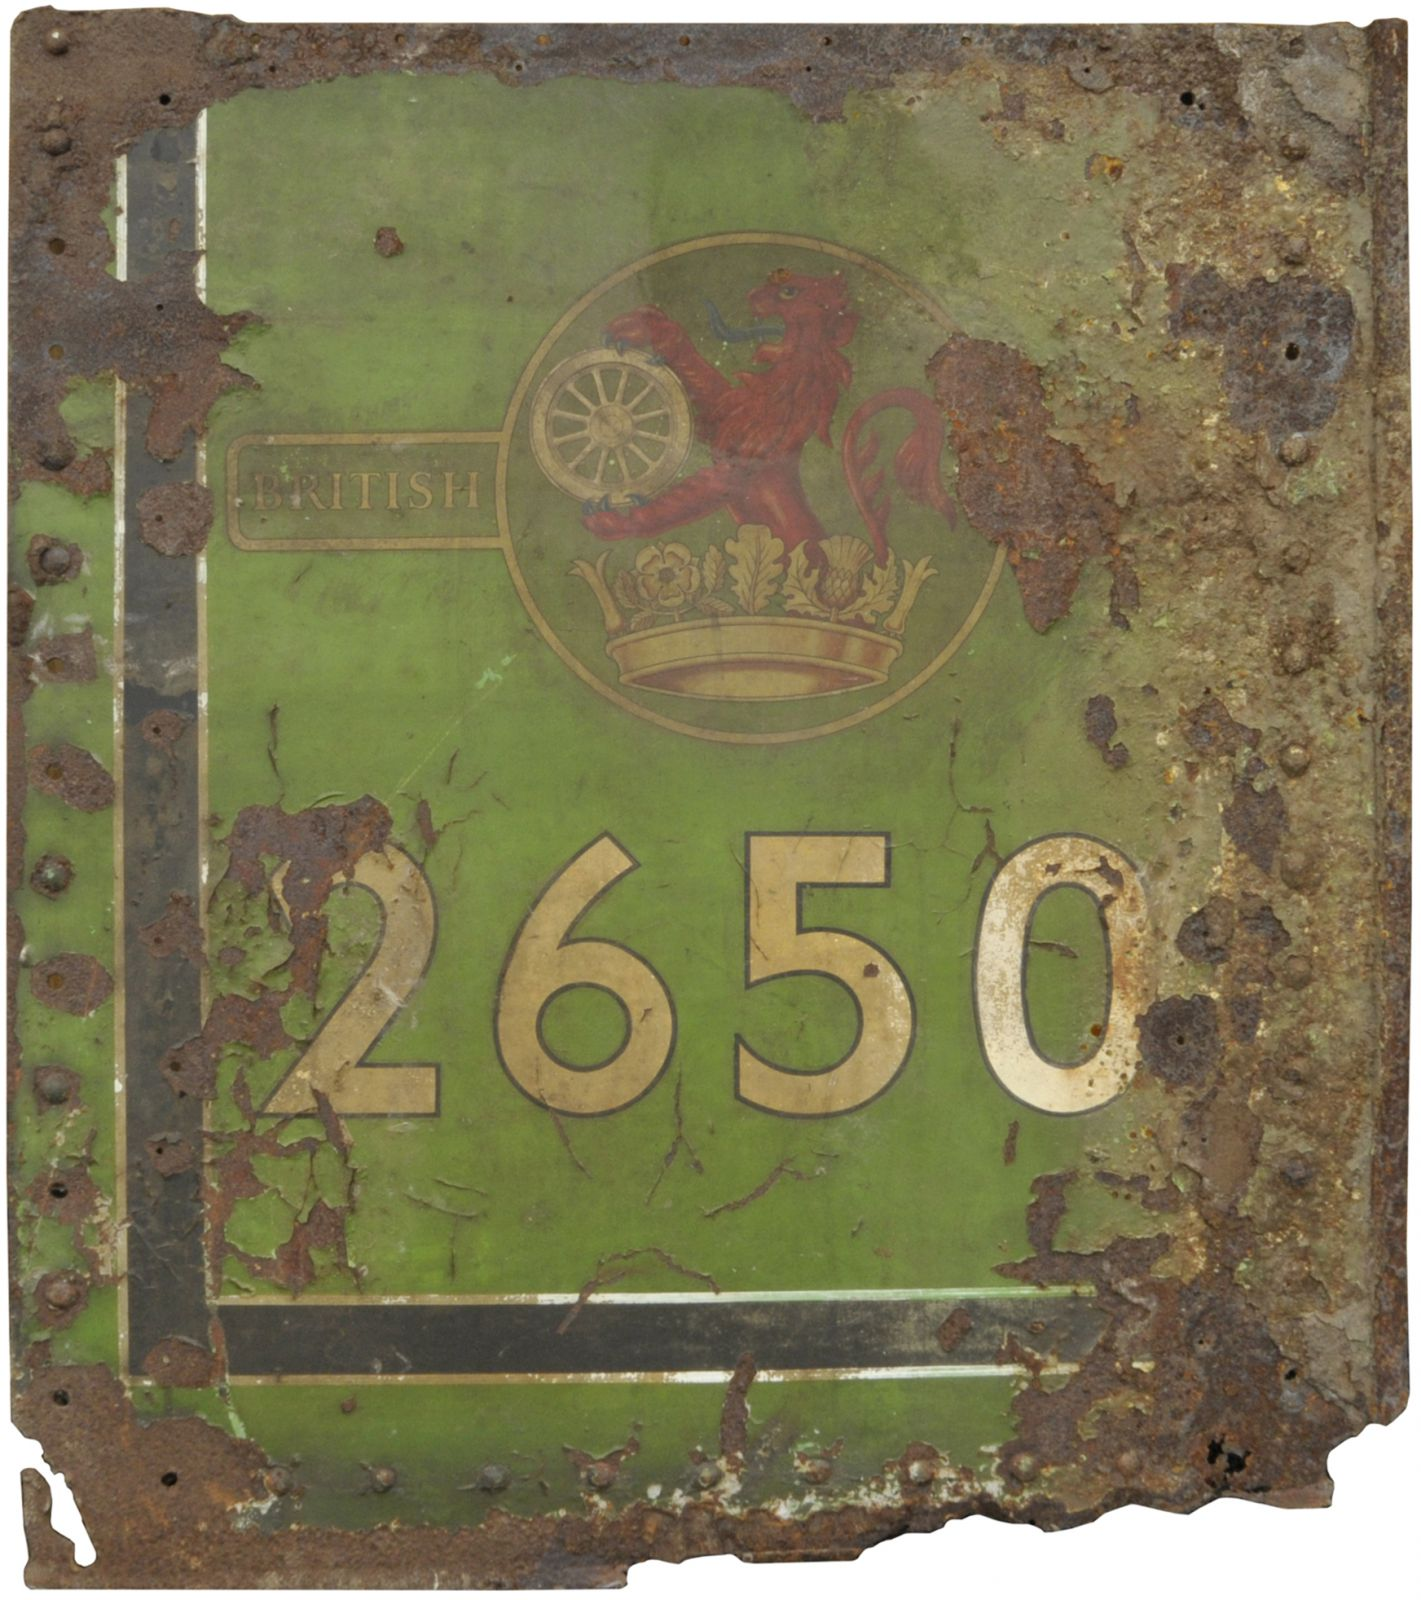 Lot 51 - Railway Locomotive and Rolling Stock, 26501 Flamecut & NER Crest: A flamecut cabside panel from